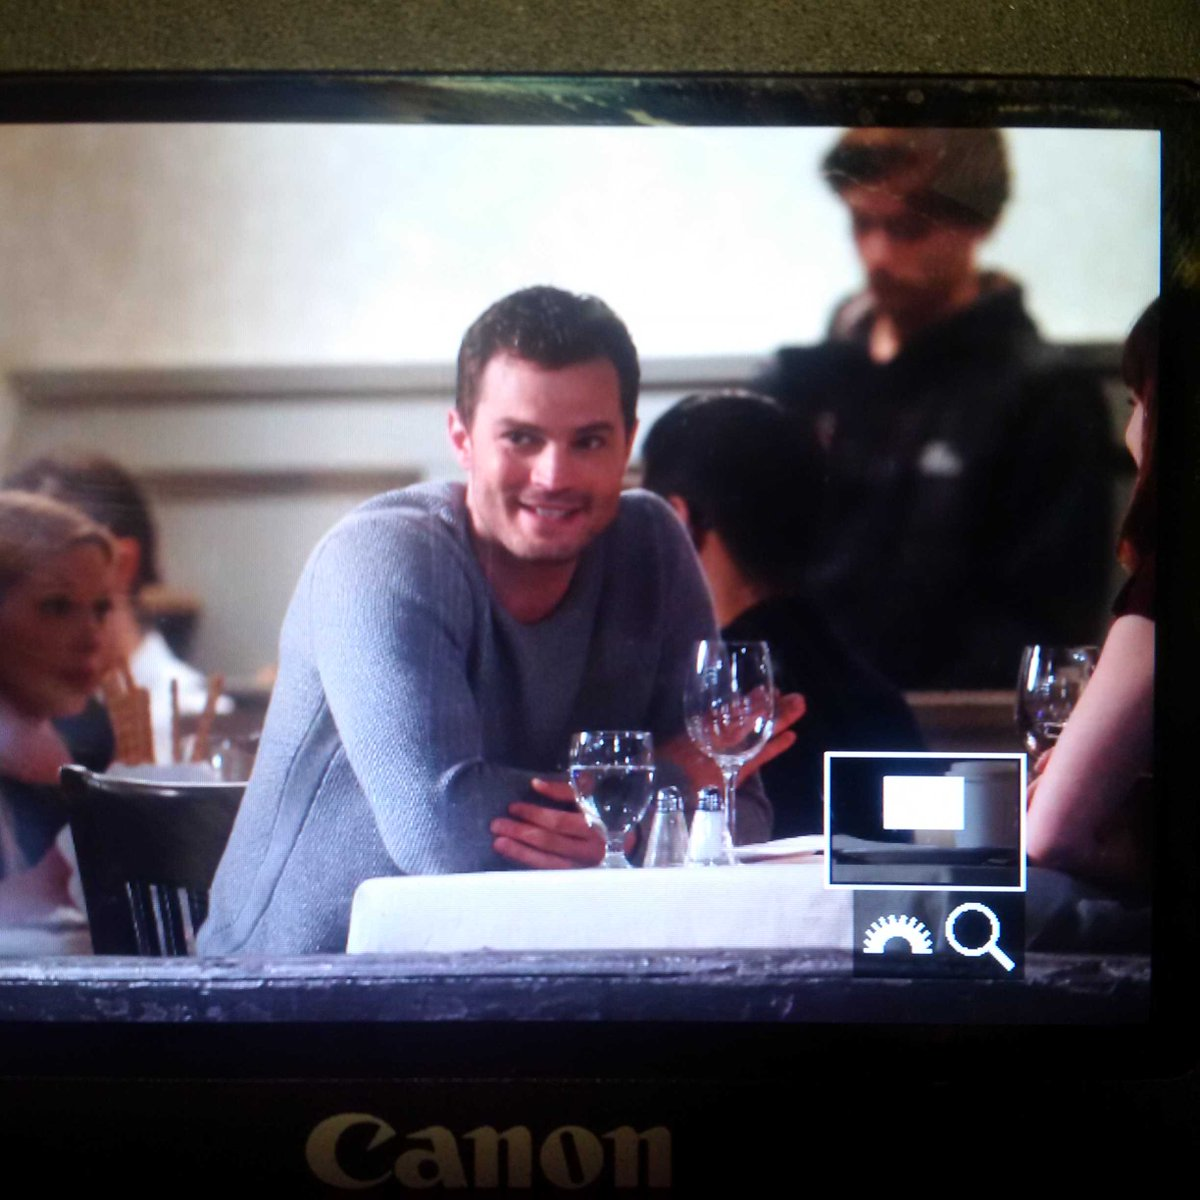 Belated update: #JamieDornan at Water St. Cafe earlier tonight filming #fiftyshades. https://t.co/O7P4xHOmdI